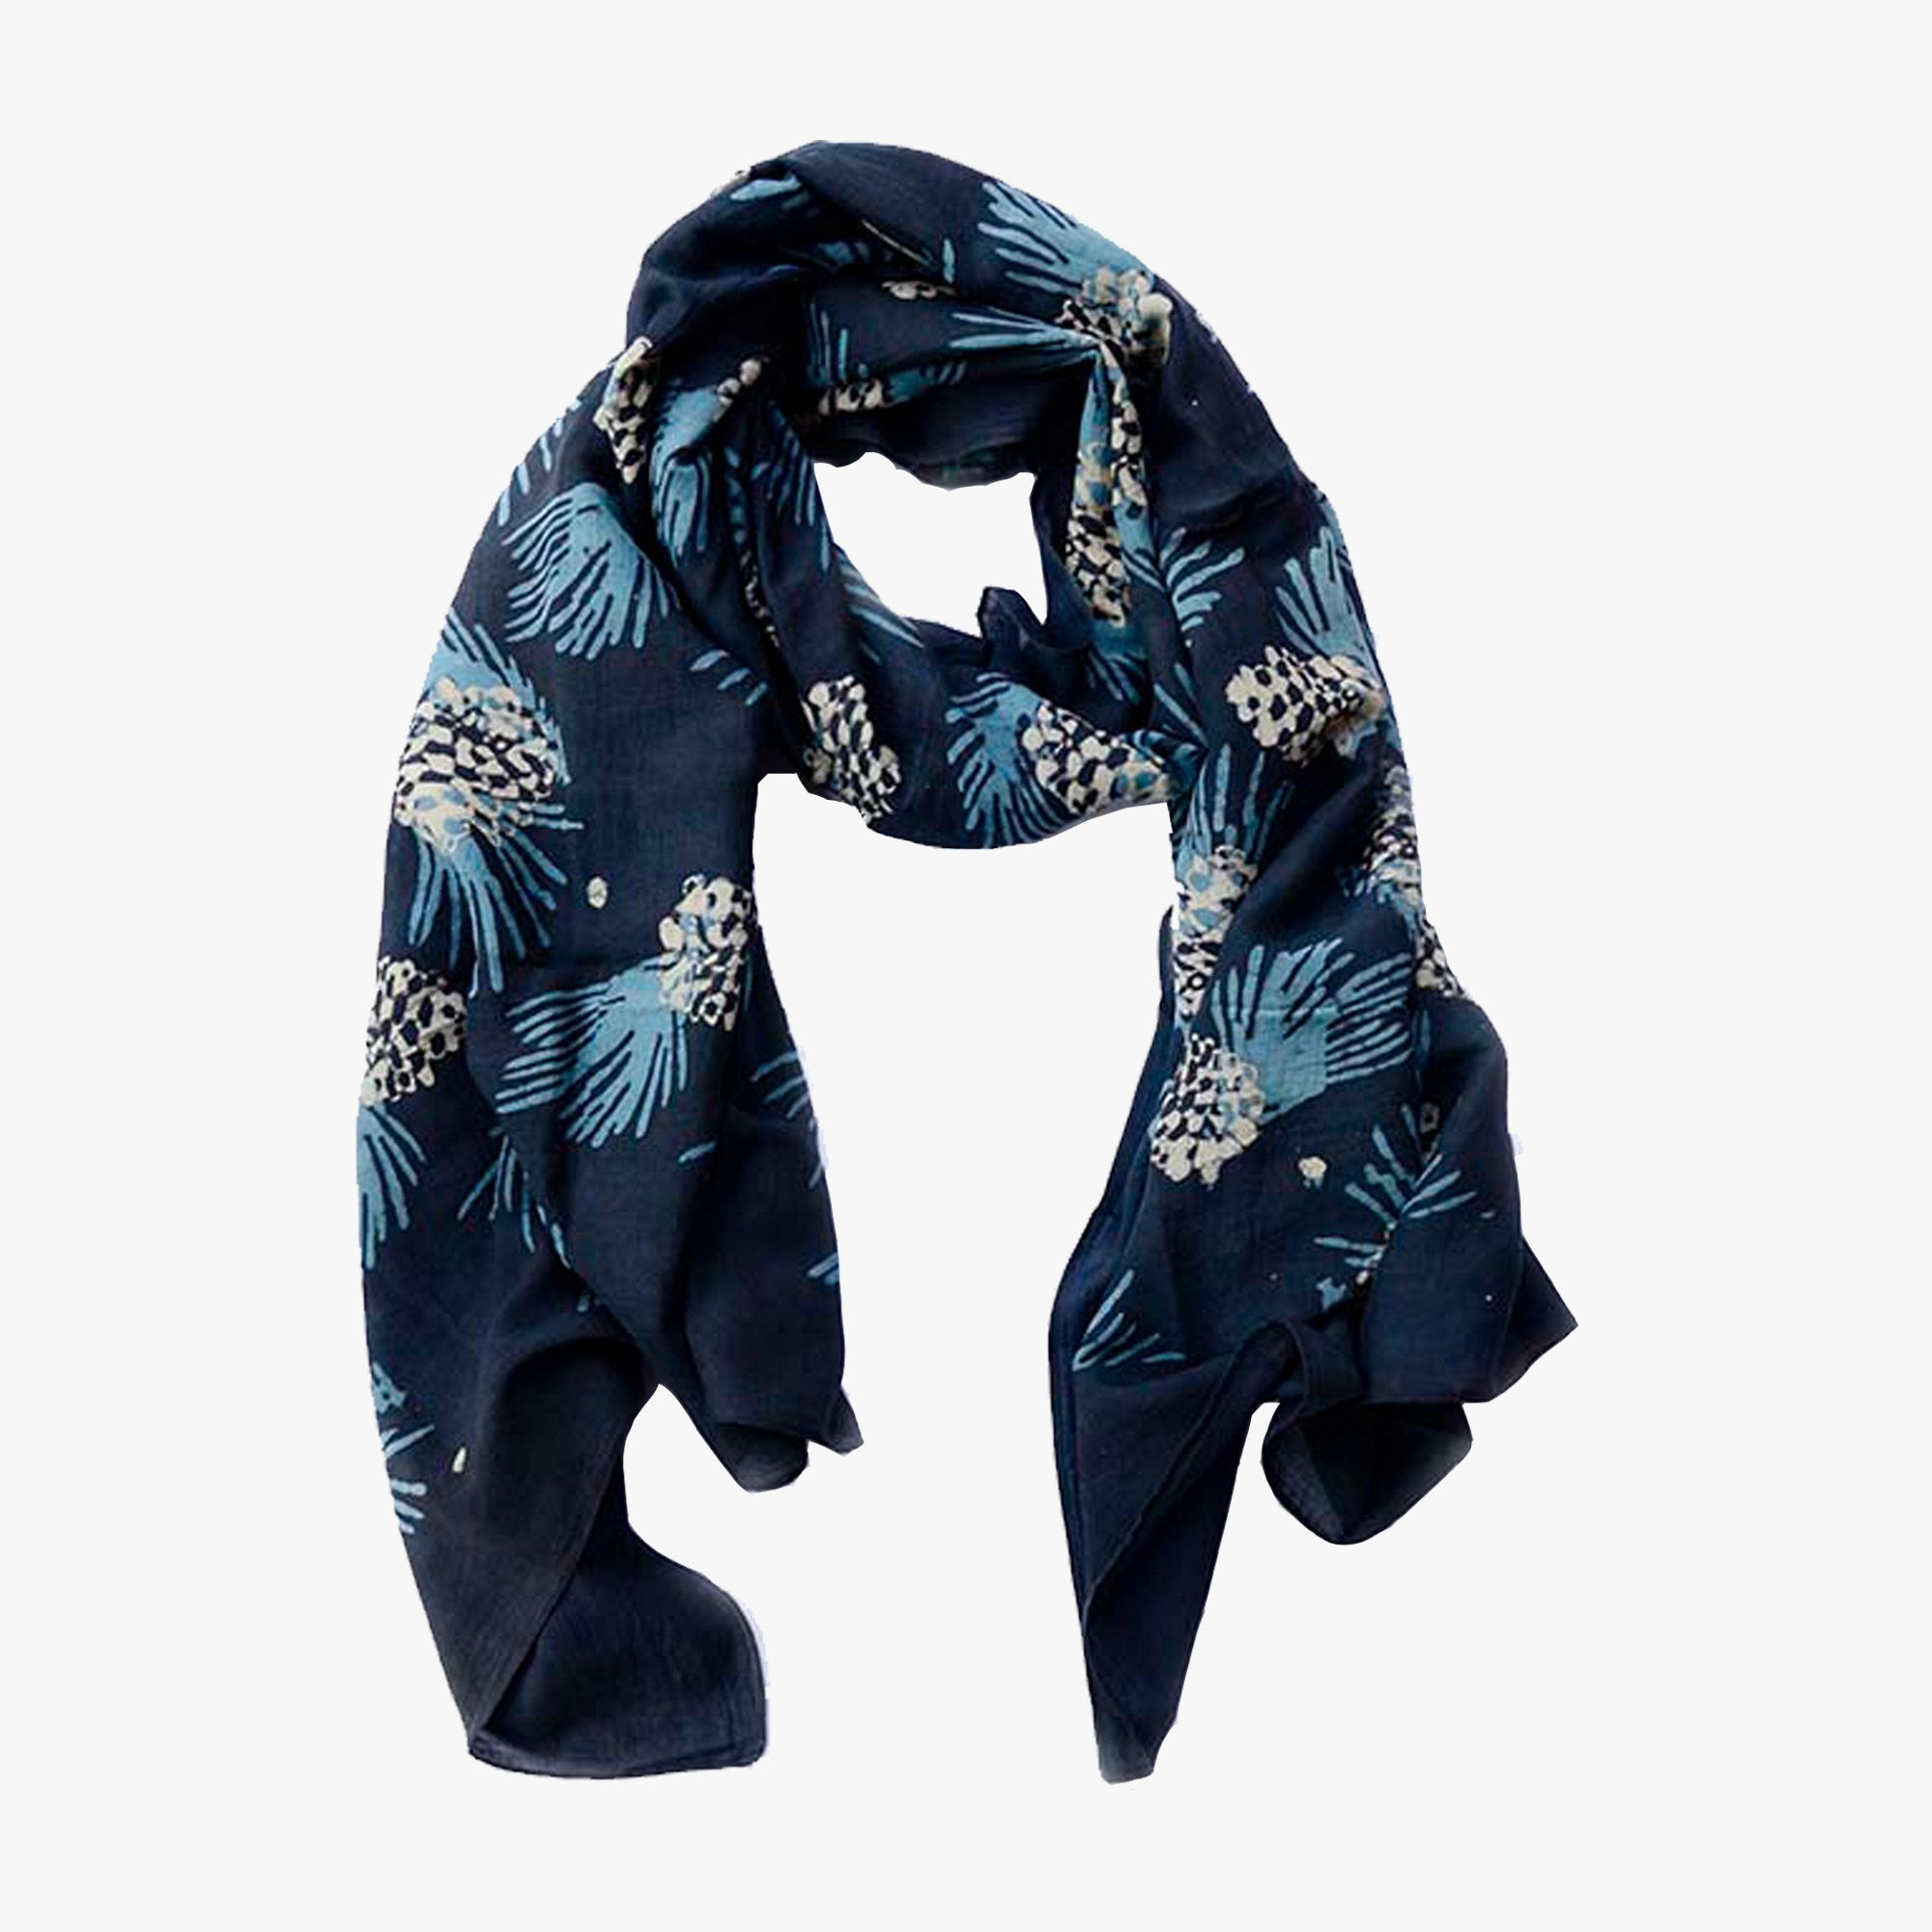 Our Hand Block Printed Pinecone Scarf is woven from luxe lightweight cotton and silk blend. Inspired by nature and dyed with natural indigo.